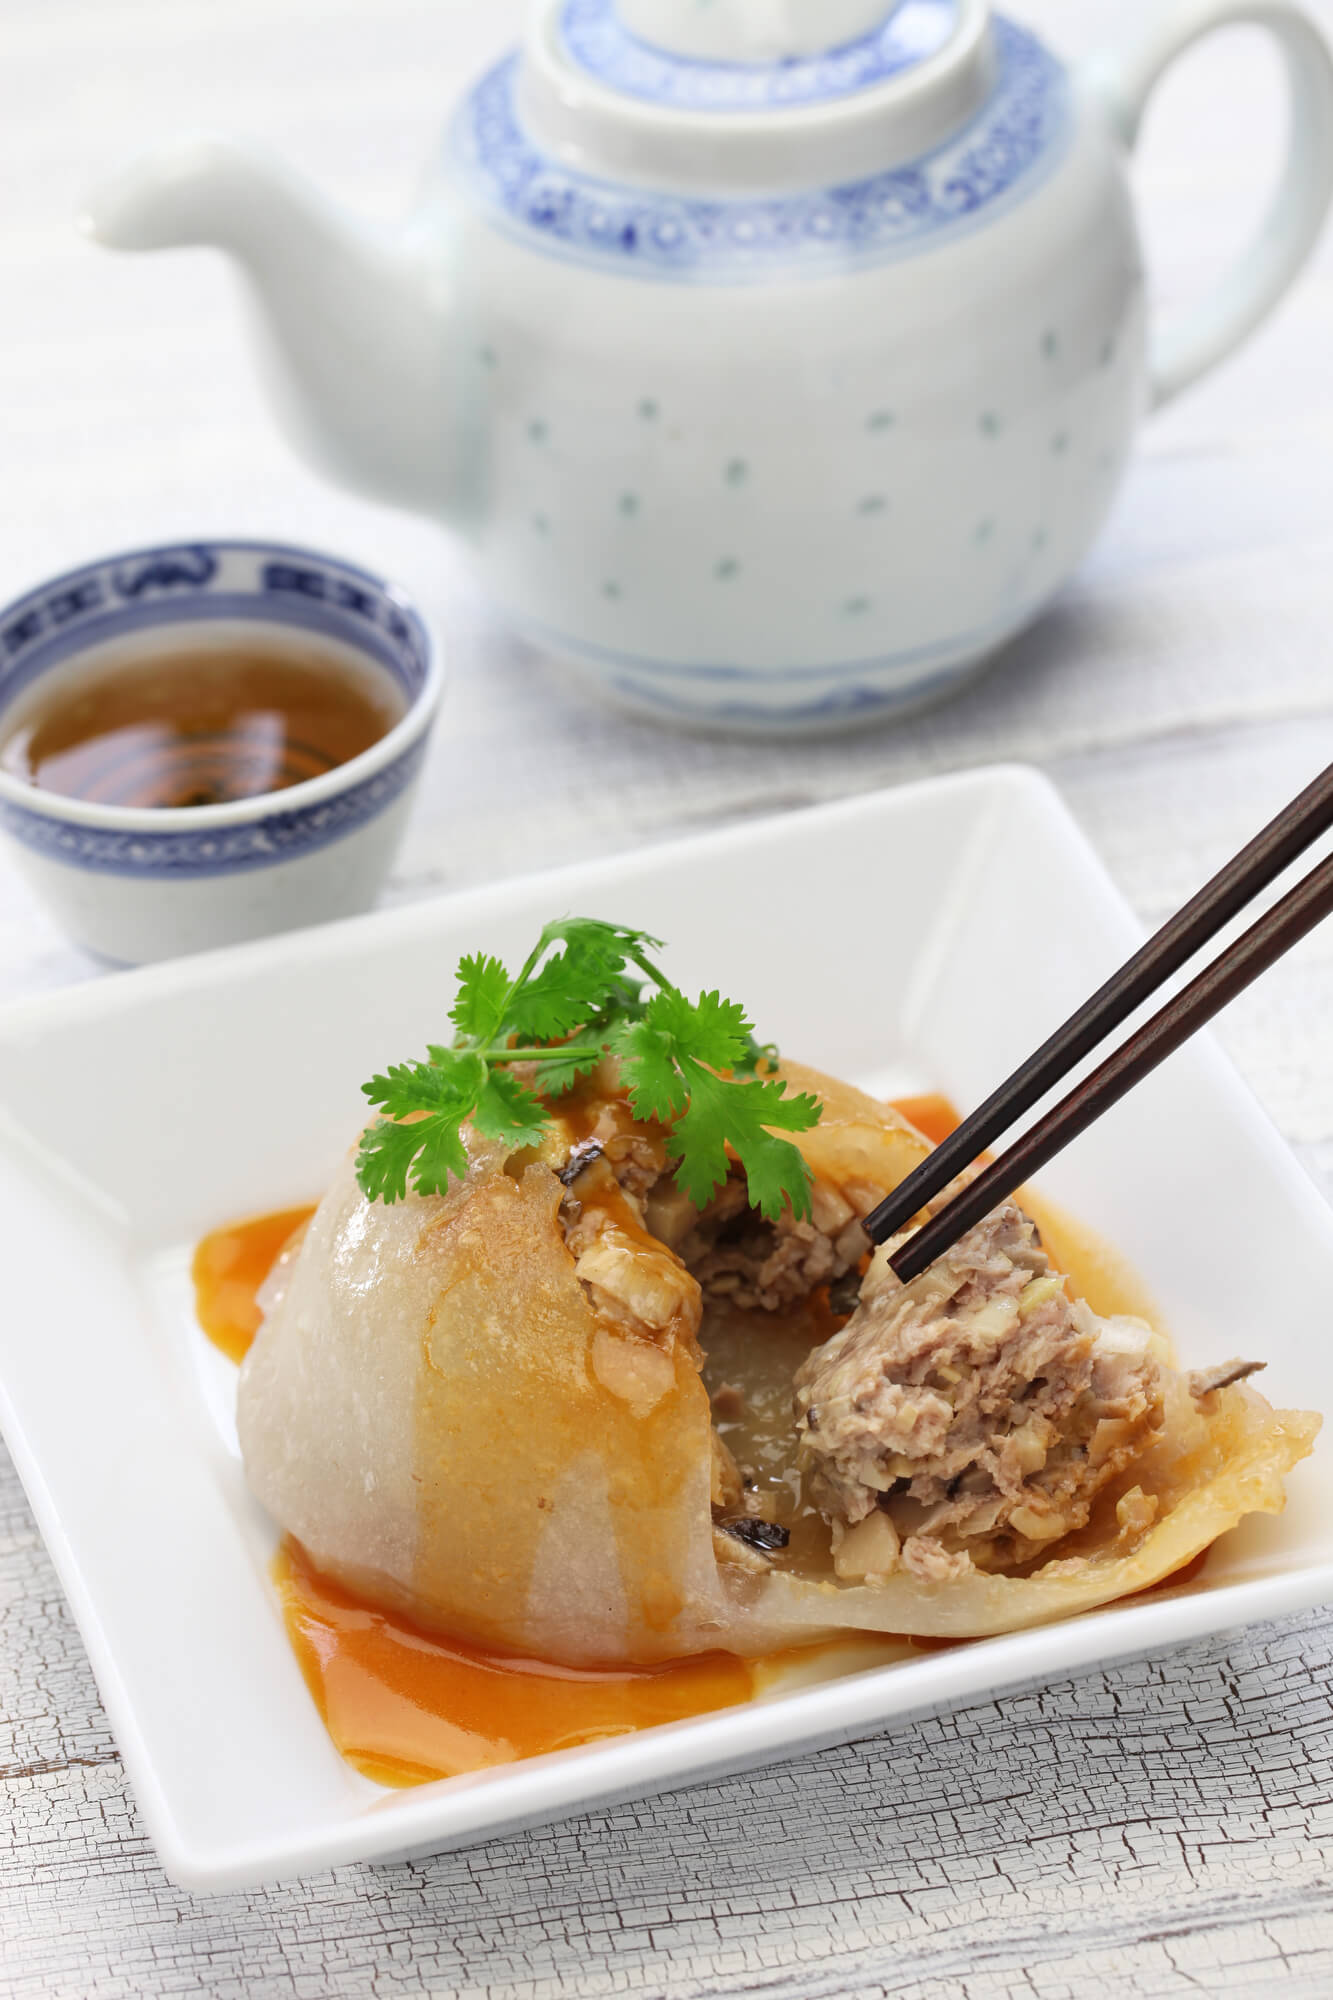 A large Ba-Wan, a tasty gelatinous Taiwanese dumpling that is both sweet and savoury.